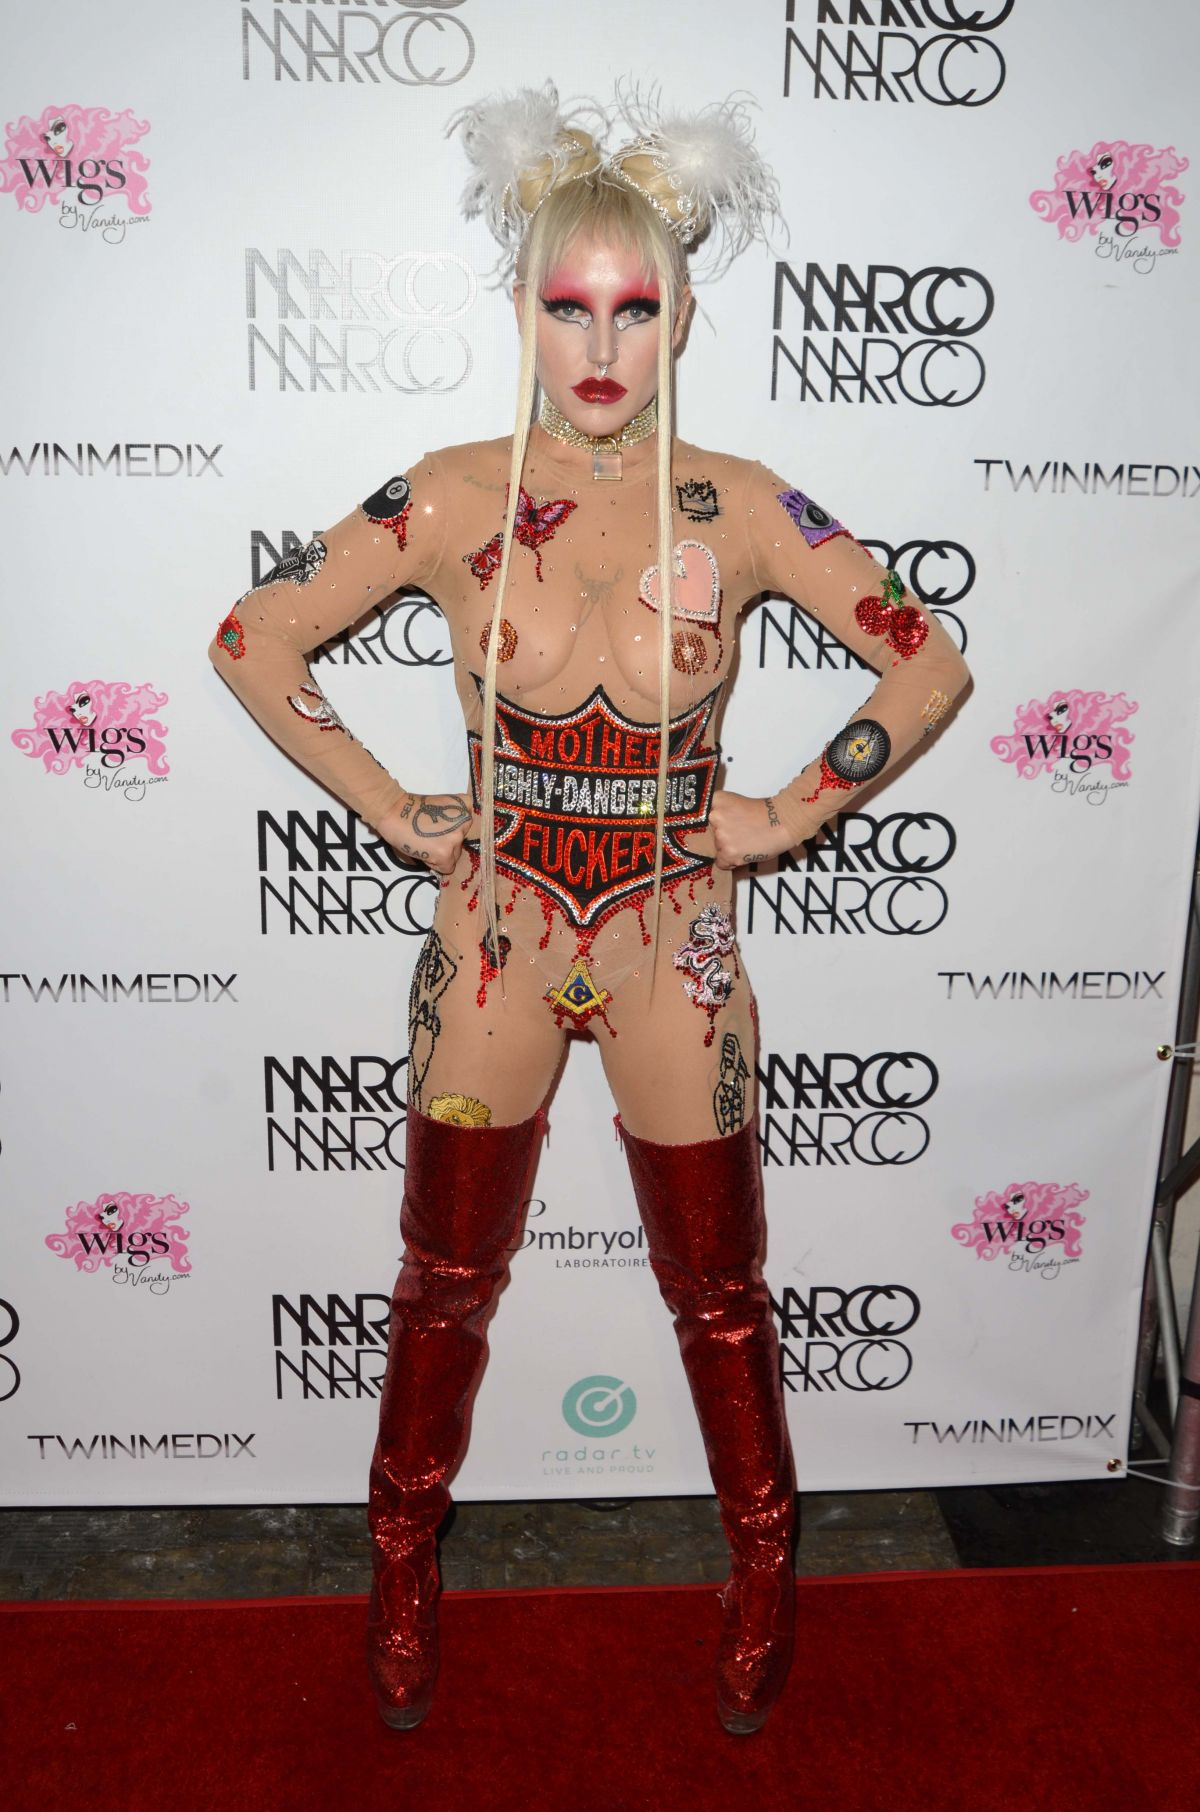 BROOKE CANDY at Marco Marco Fashion Show in Los Angeles 10/21/2016